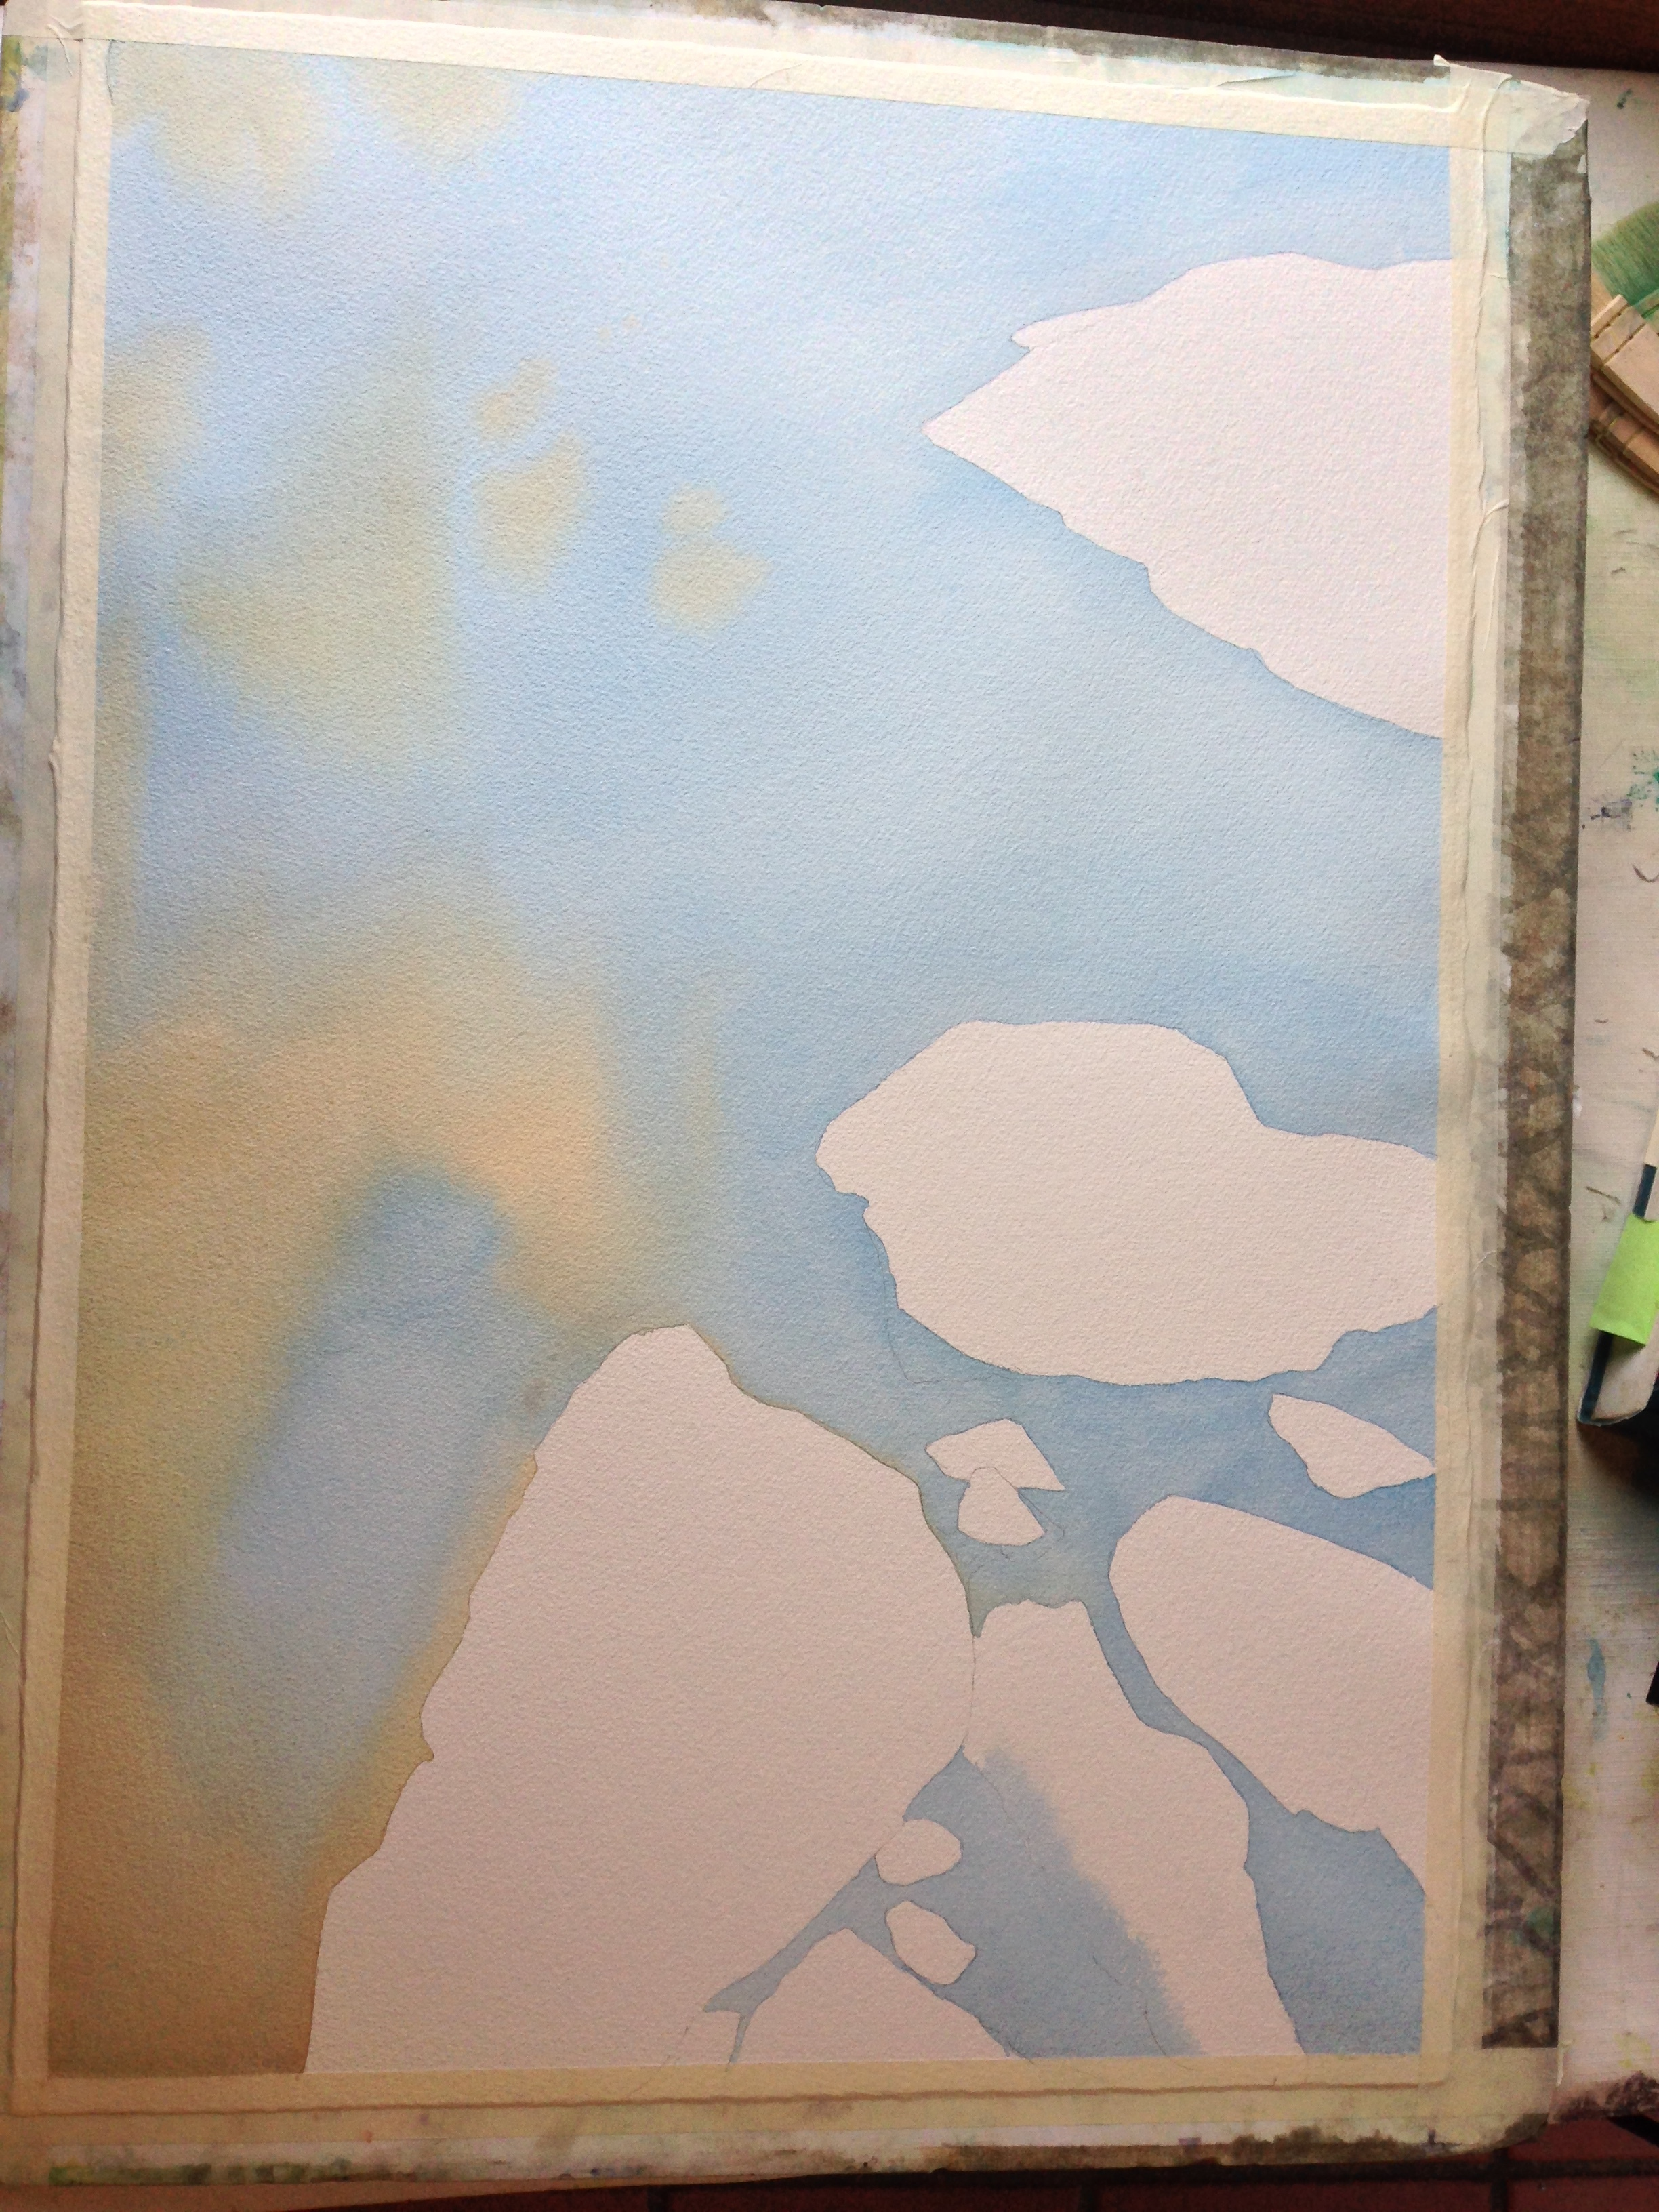 step 1- the water with pthalo blue and a muted yellow ochre mix (yellow ochre, ultramarine blue, and burnt sienna), wet into wet.